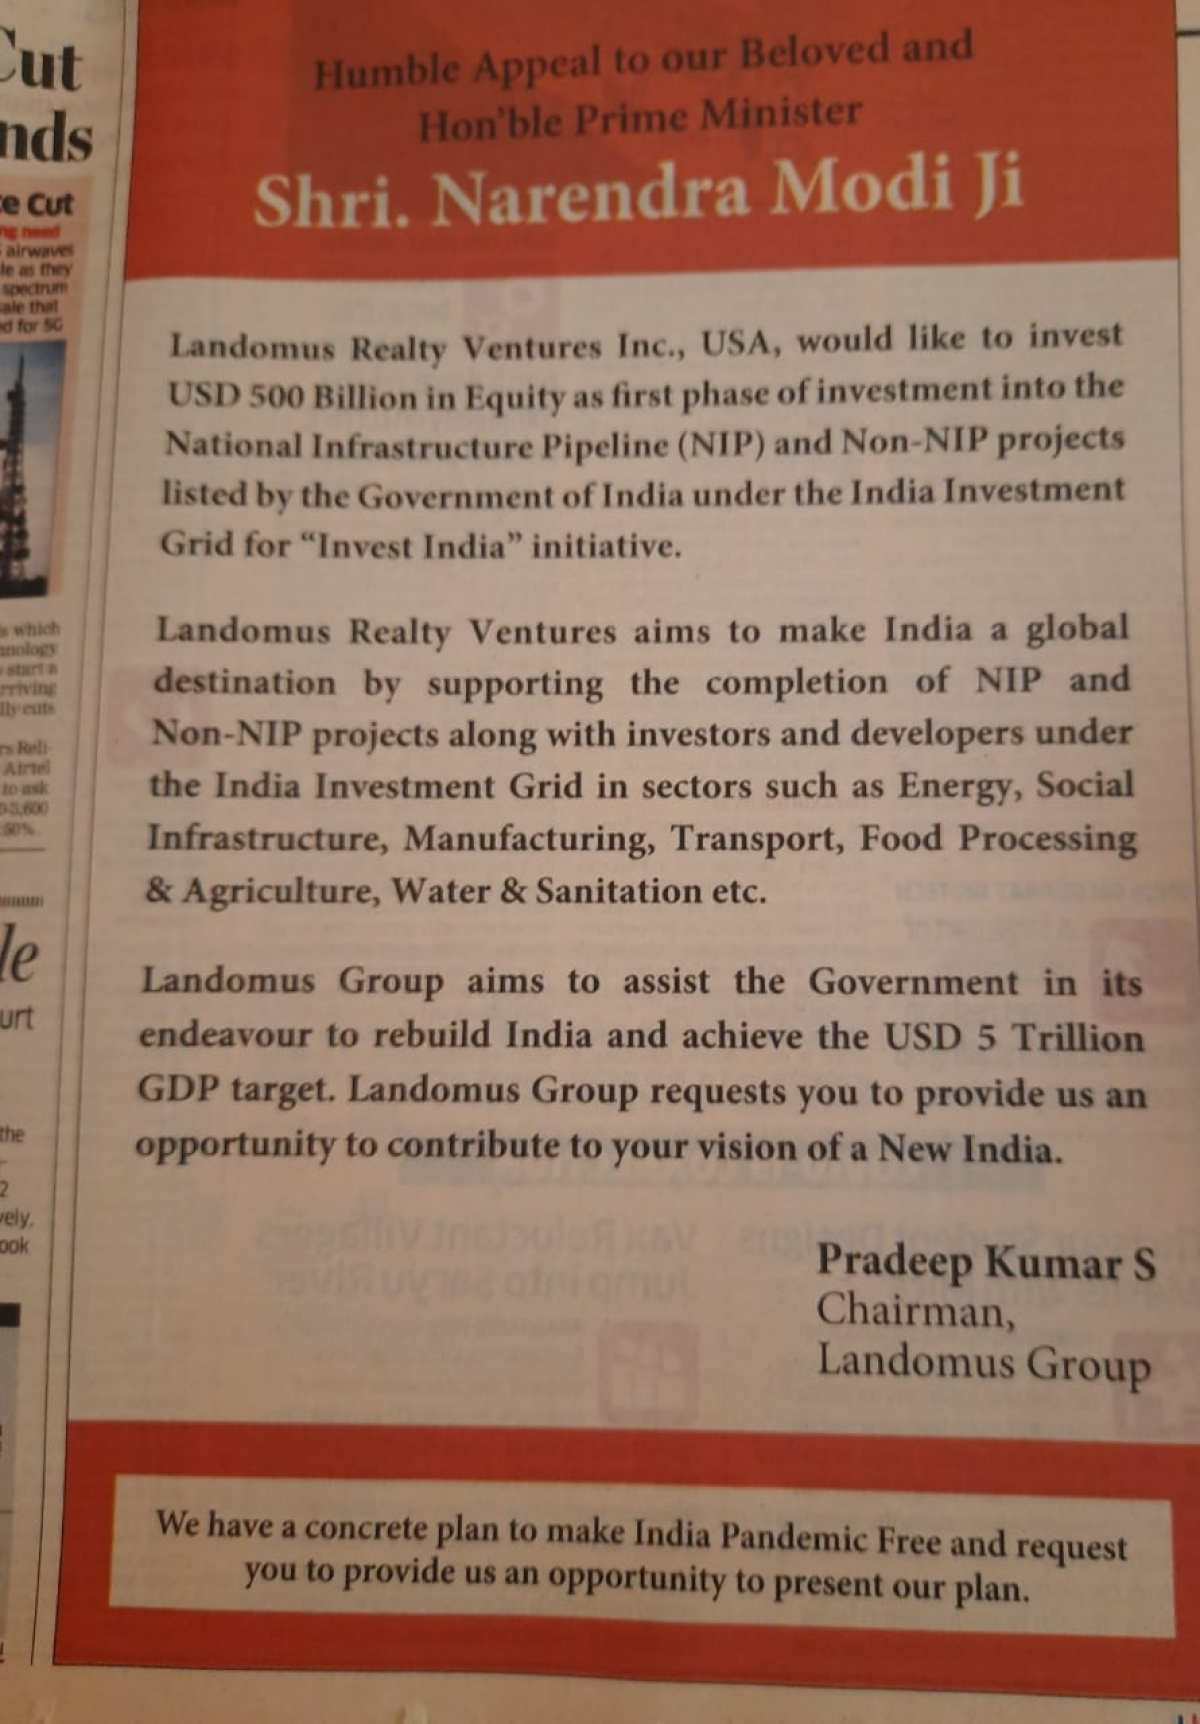 US-based realty firm wants to invest $500 bn in India's National Infrastructure Pipeline